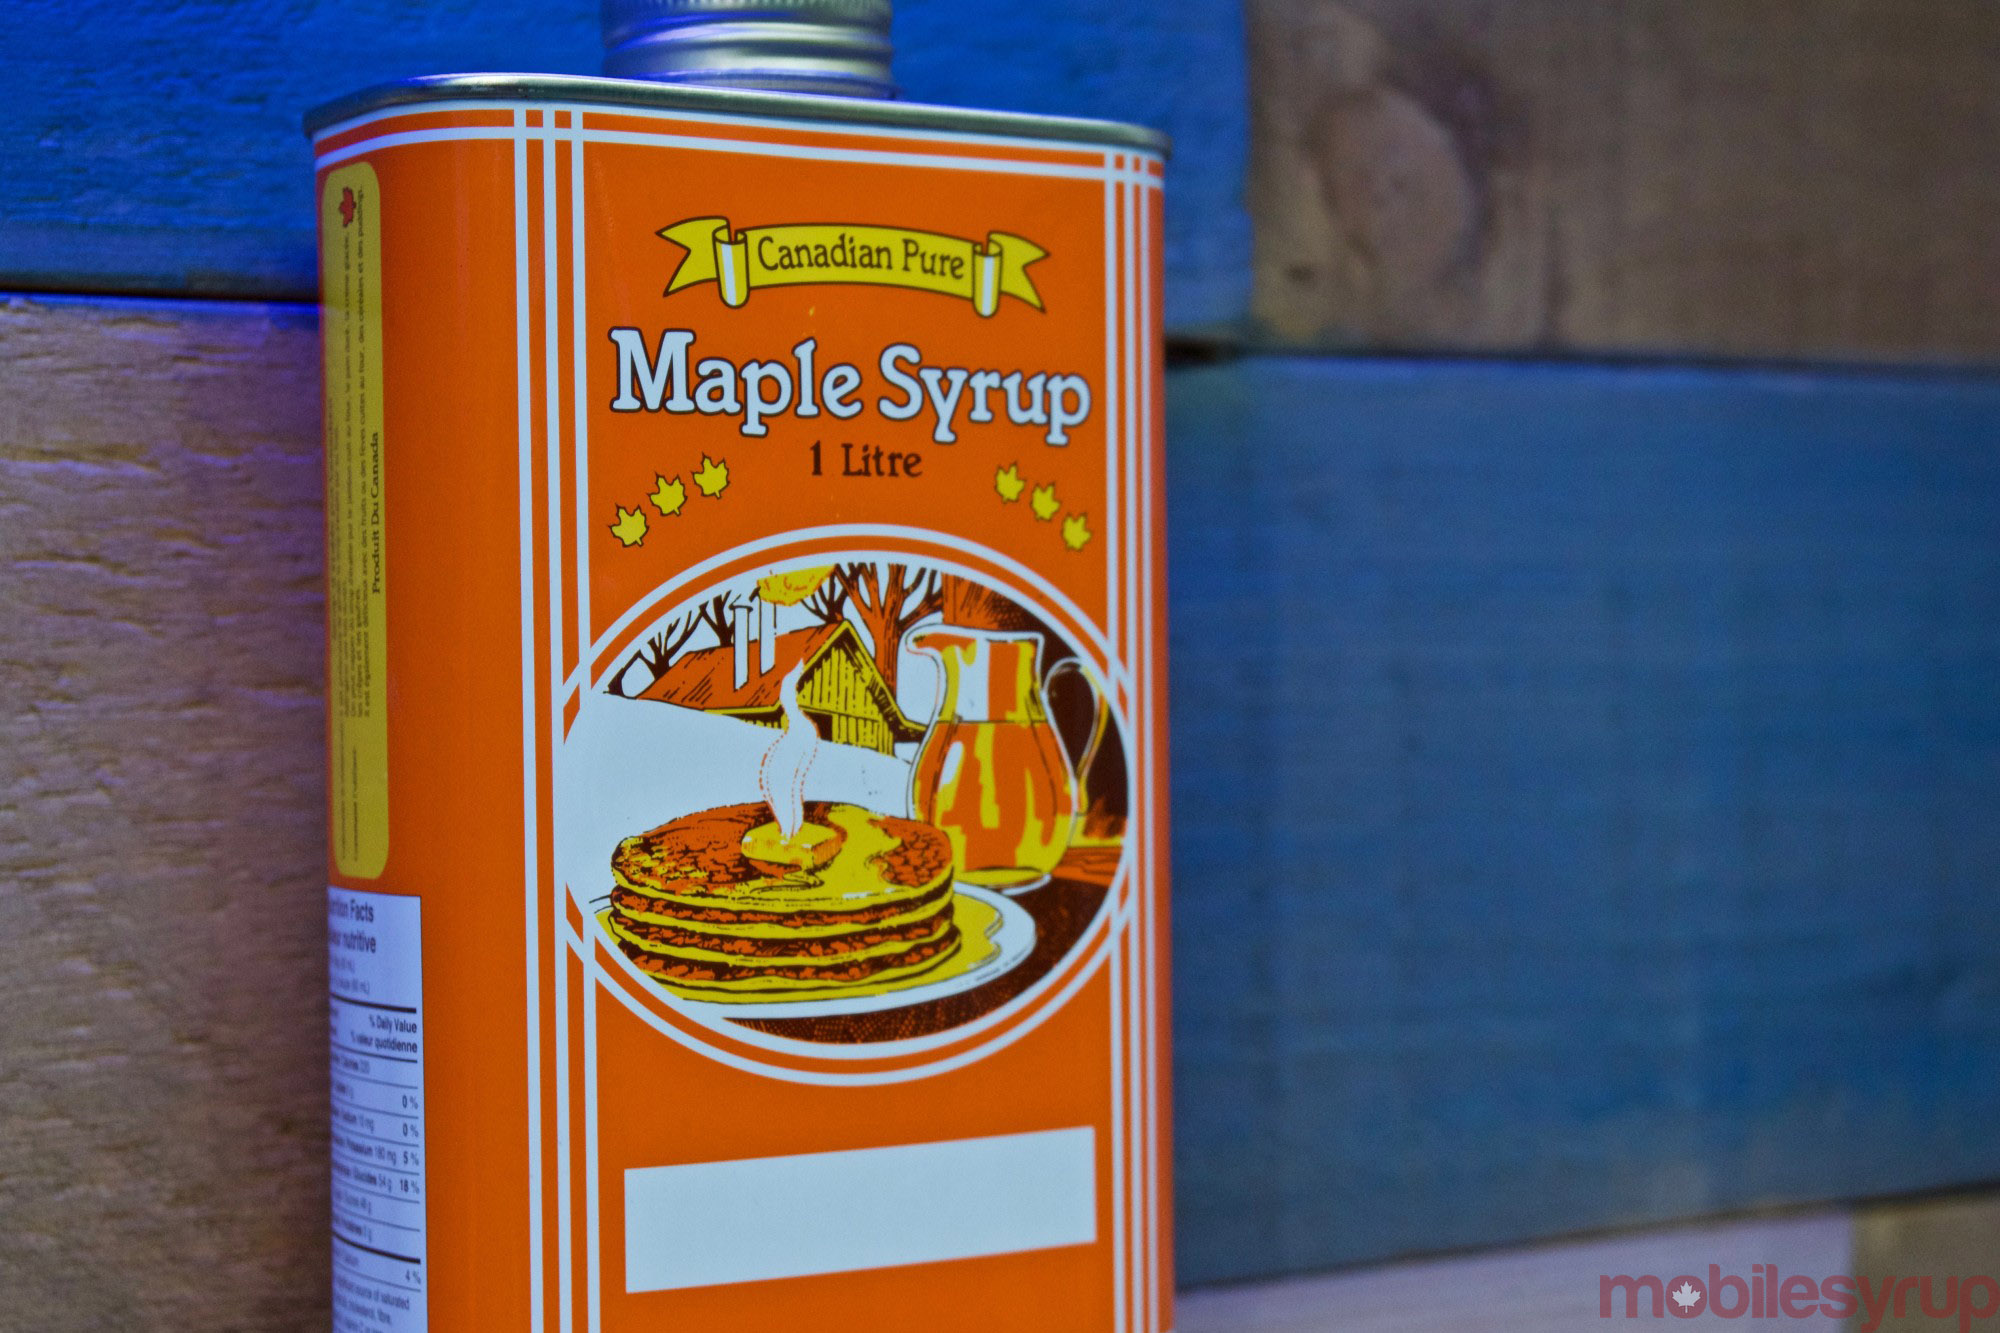 Try as I might, I did not find a can of Mobile Syrup in Twitter Canada's office.